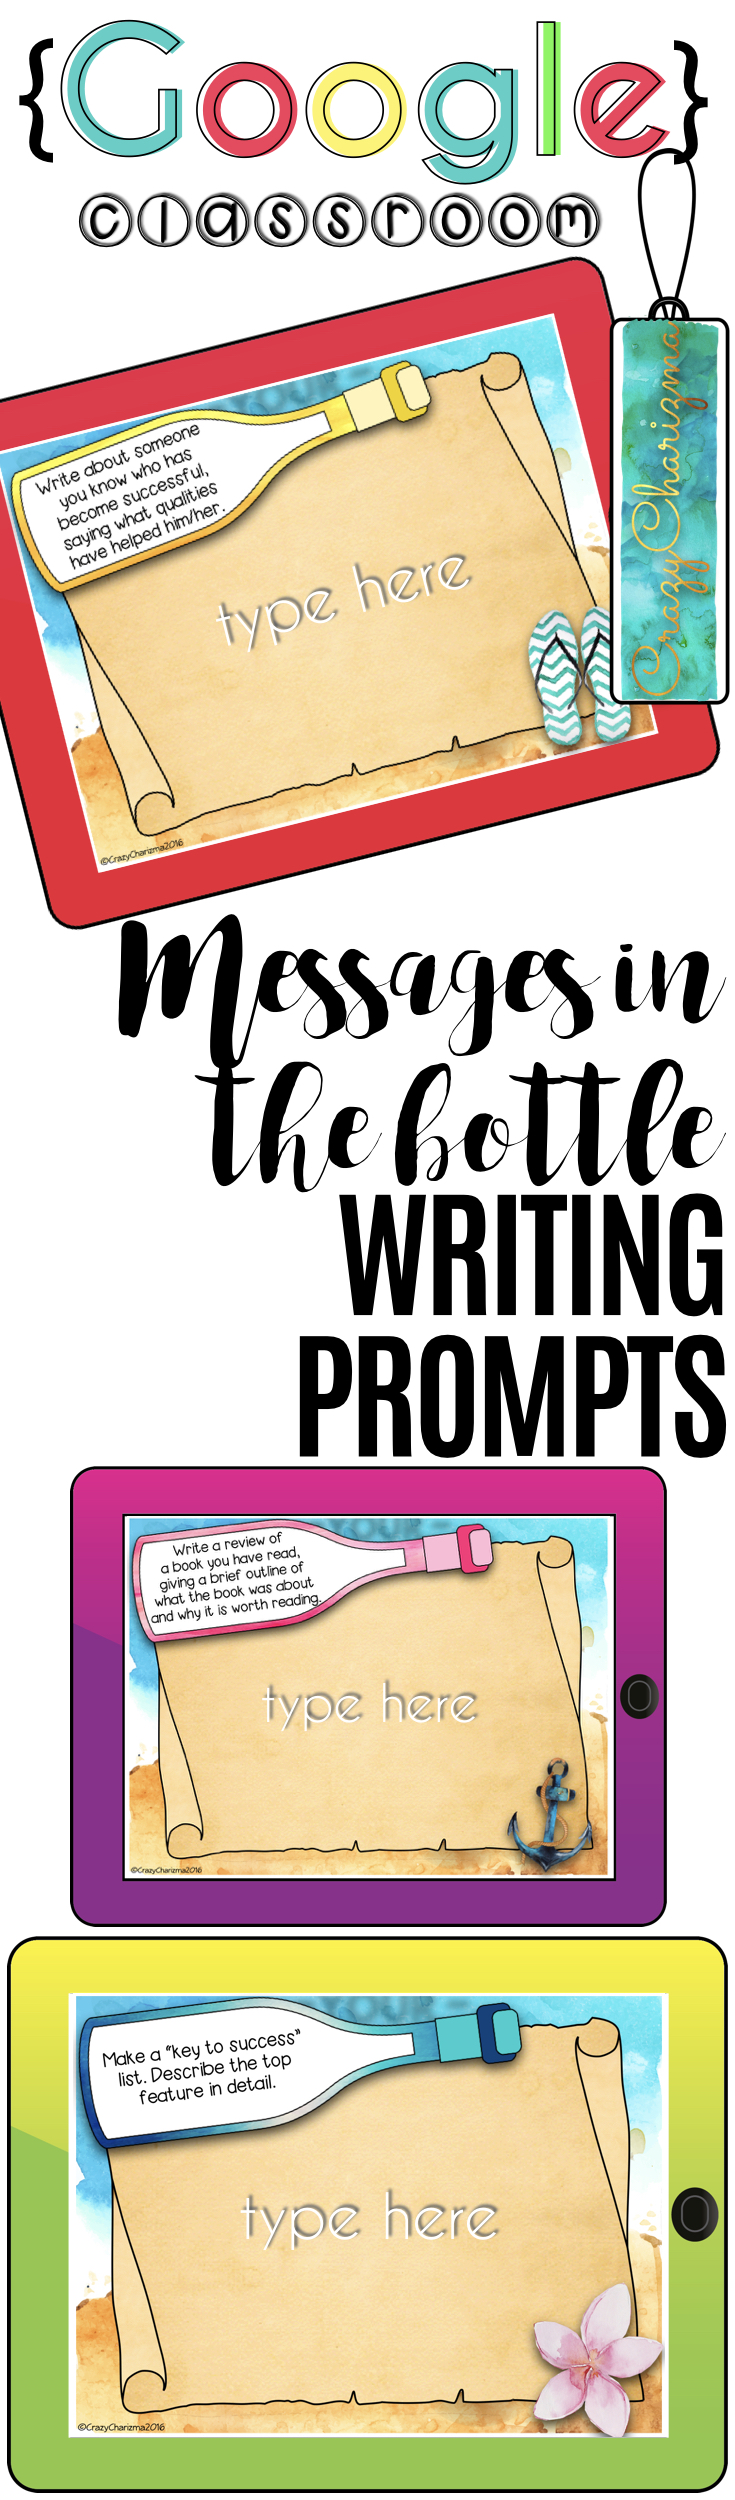 Go {Google} now! Would you like to go paperless and engage your kids? Looking for something you can use over and over? Embrace technology - go Google now! Improve and inspire your students with these 195 WRITING PROMPTS - Messages in the Bottle. Use all year around and provide students with writing tasks and ideas. The packet contains narrative, informational and opinion writing prompts for teens. The prompts can be used as Writing Centers, as well as during ESL lessons. | CrazyCharizma